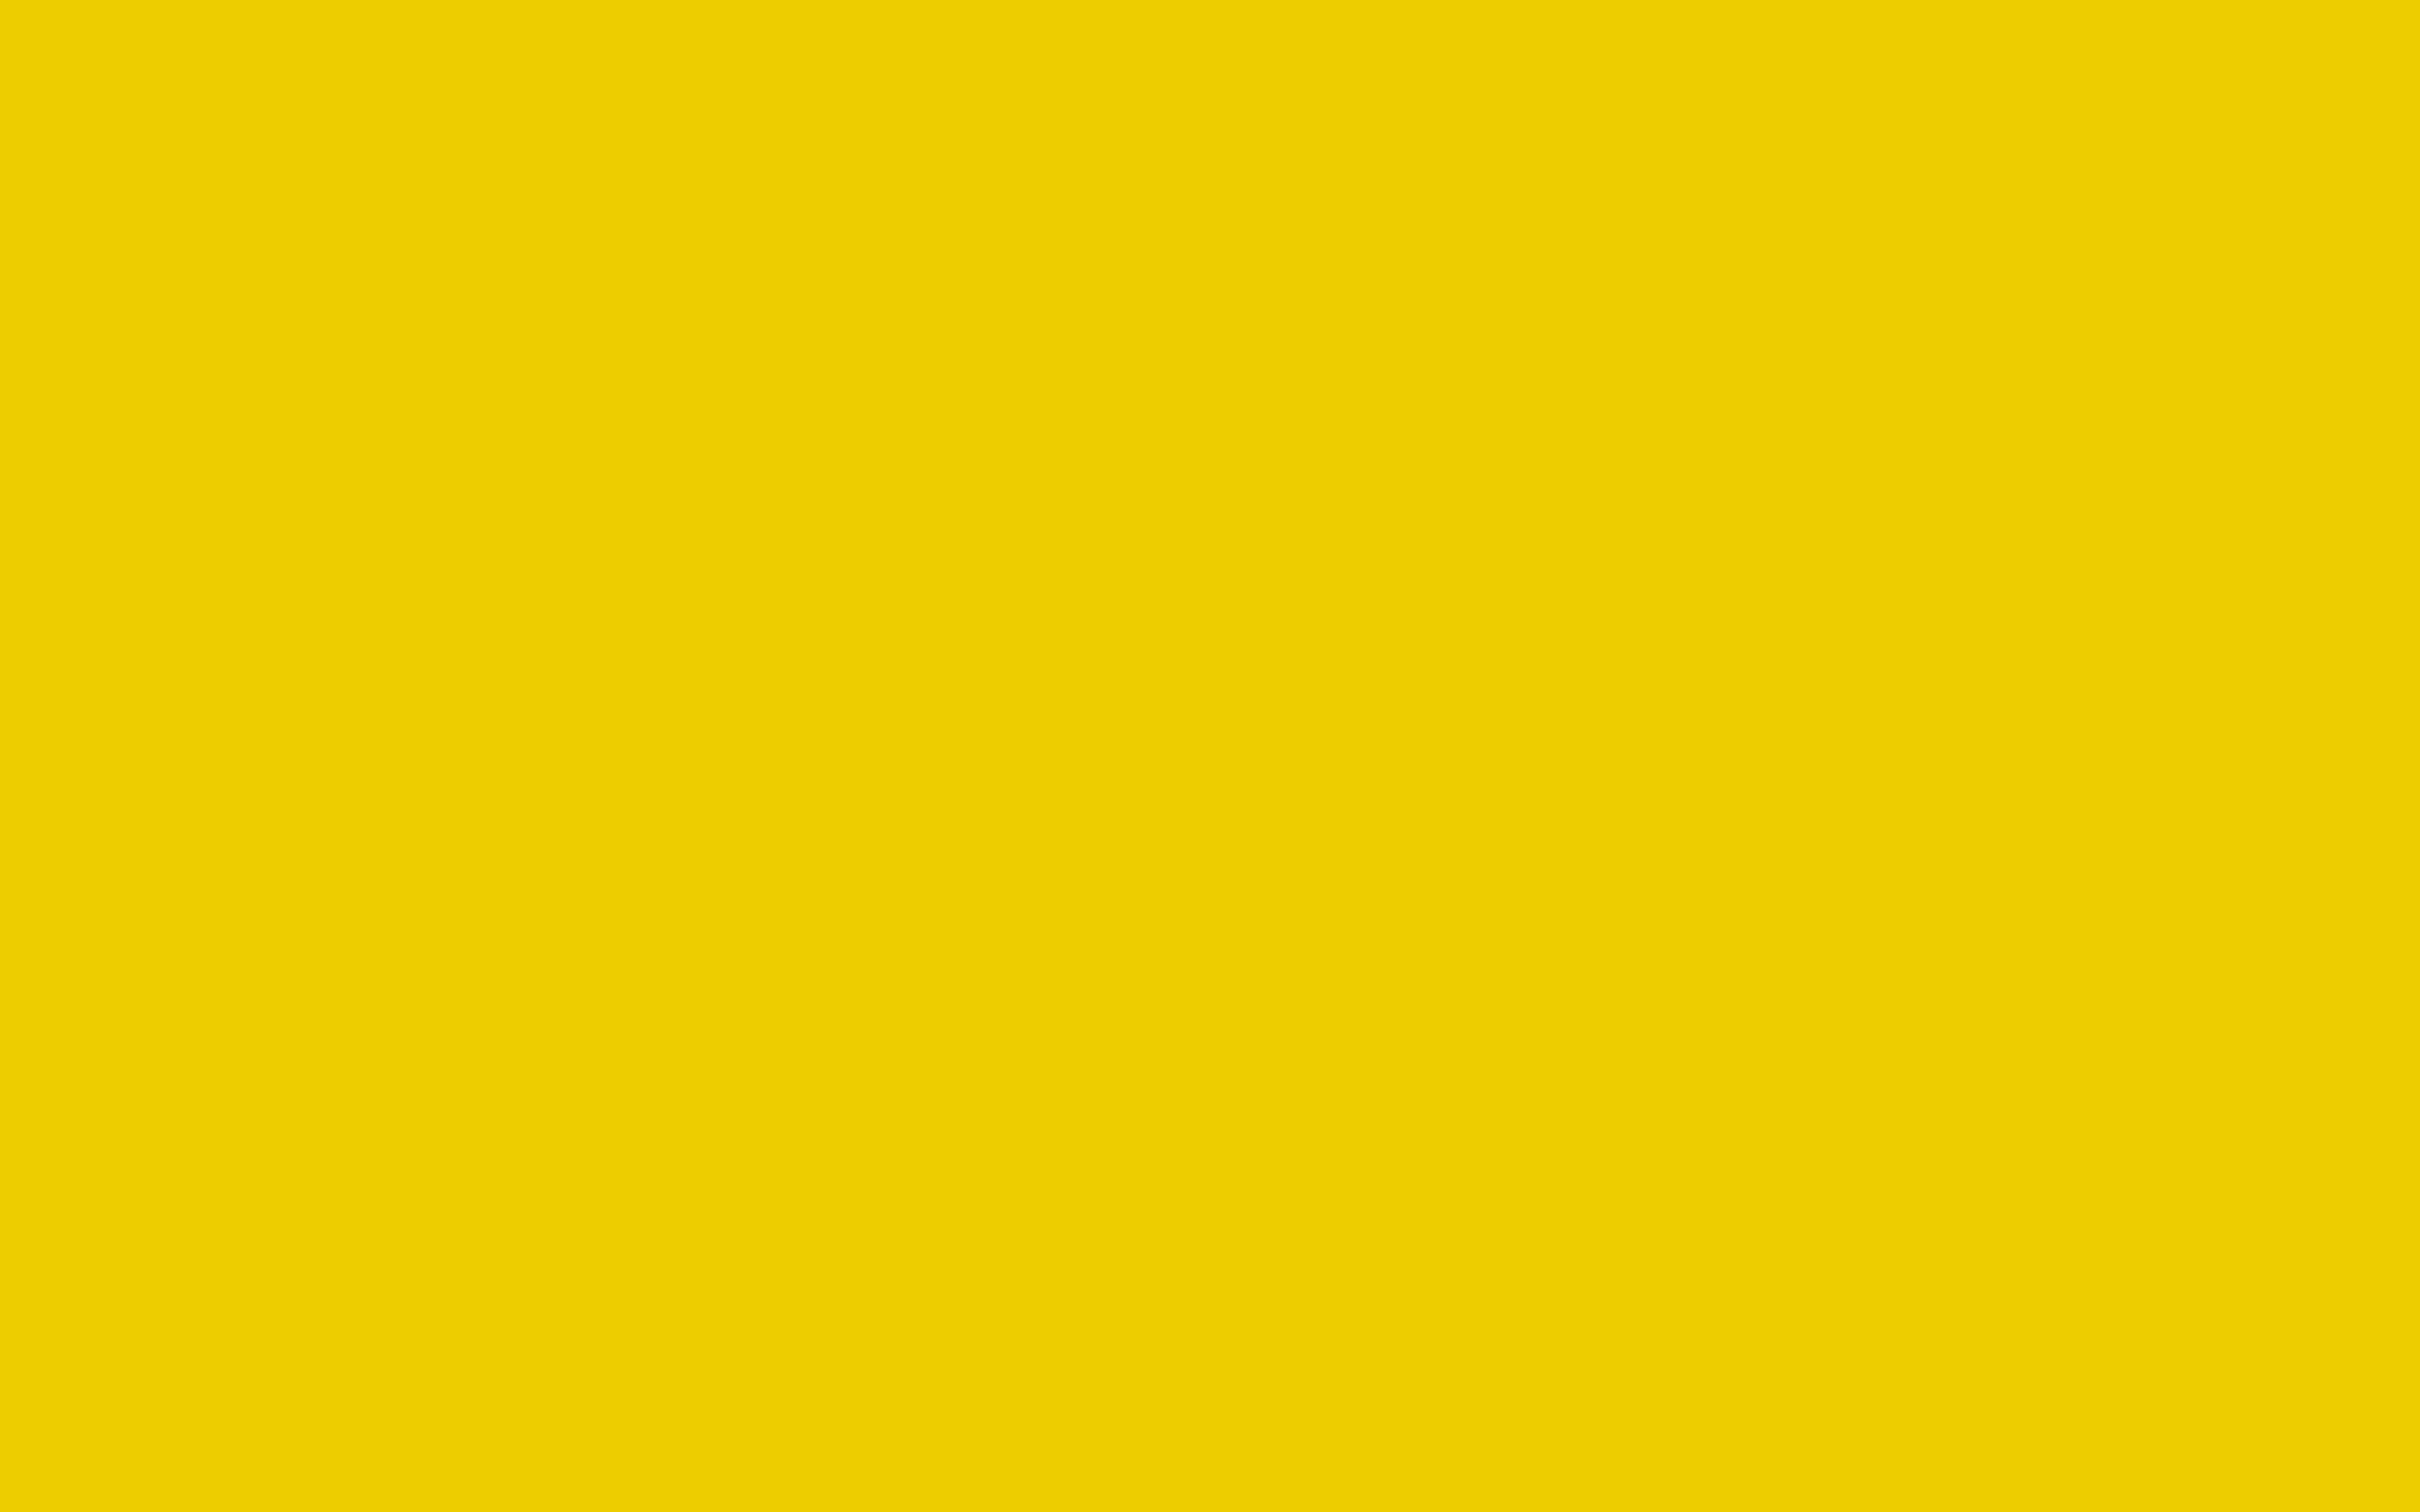 2560x1600 Yellow Munsell Solid Color Background